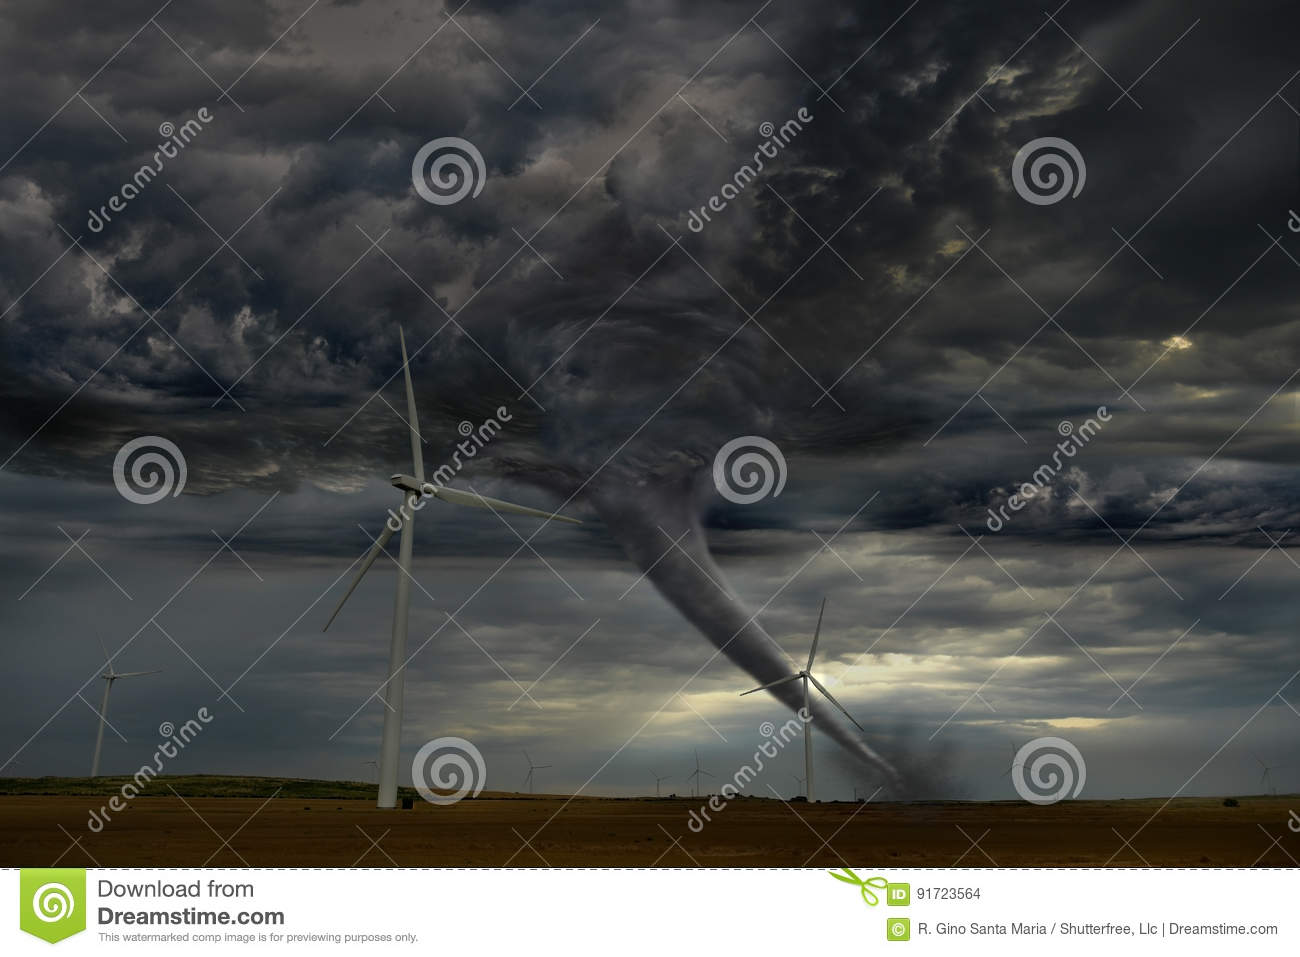 Tornado Descending on Windmill Farm